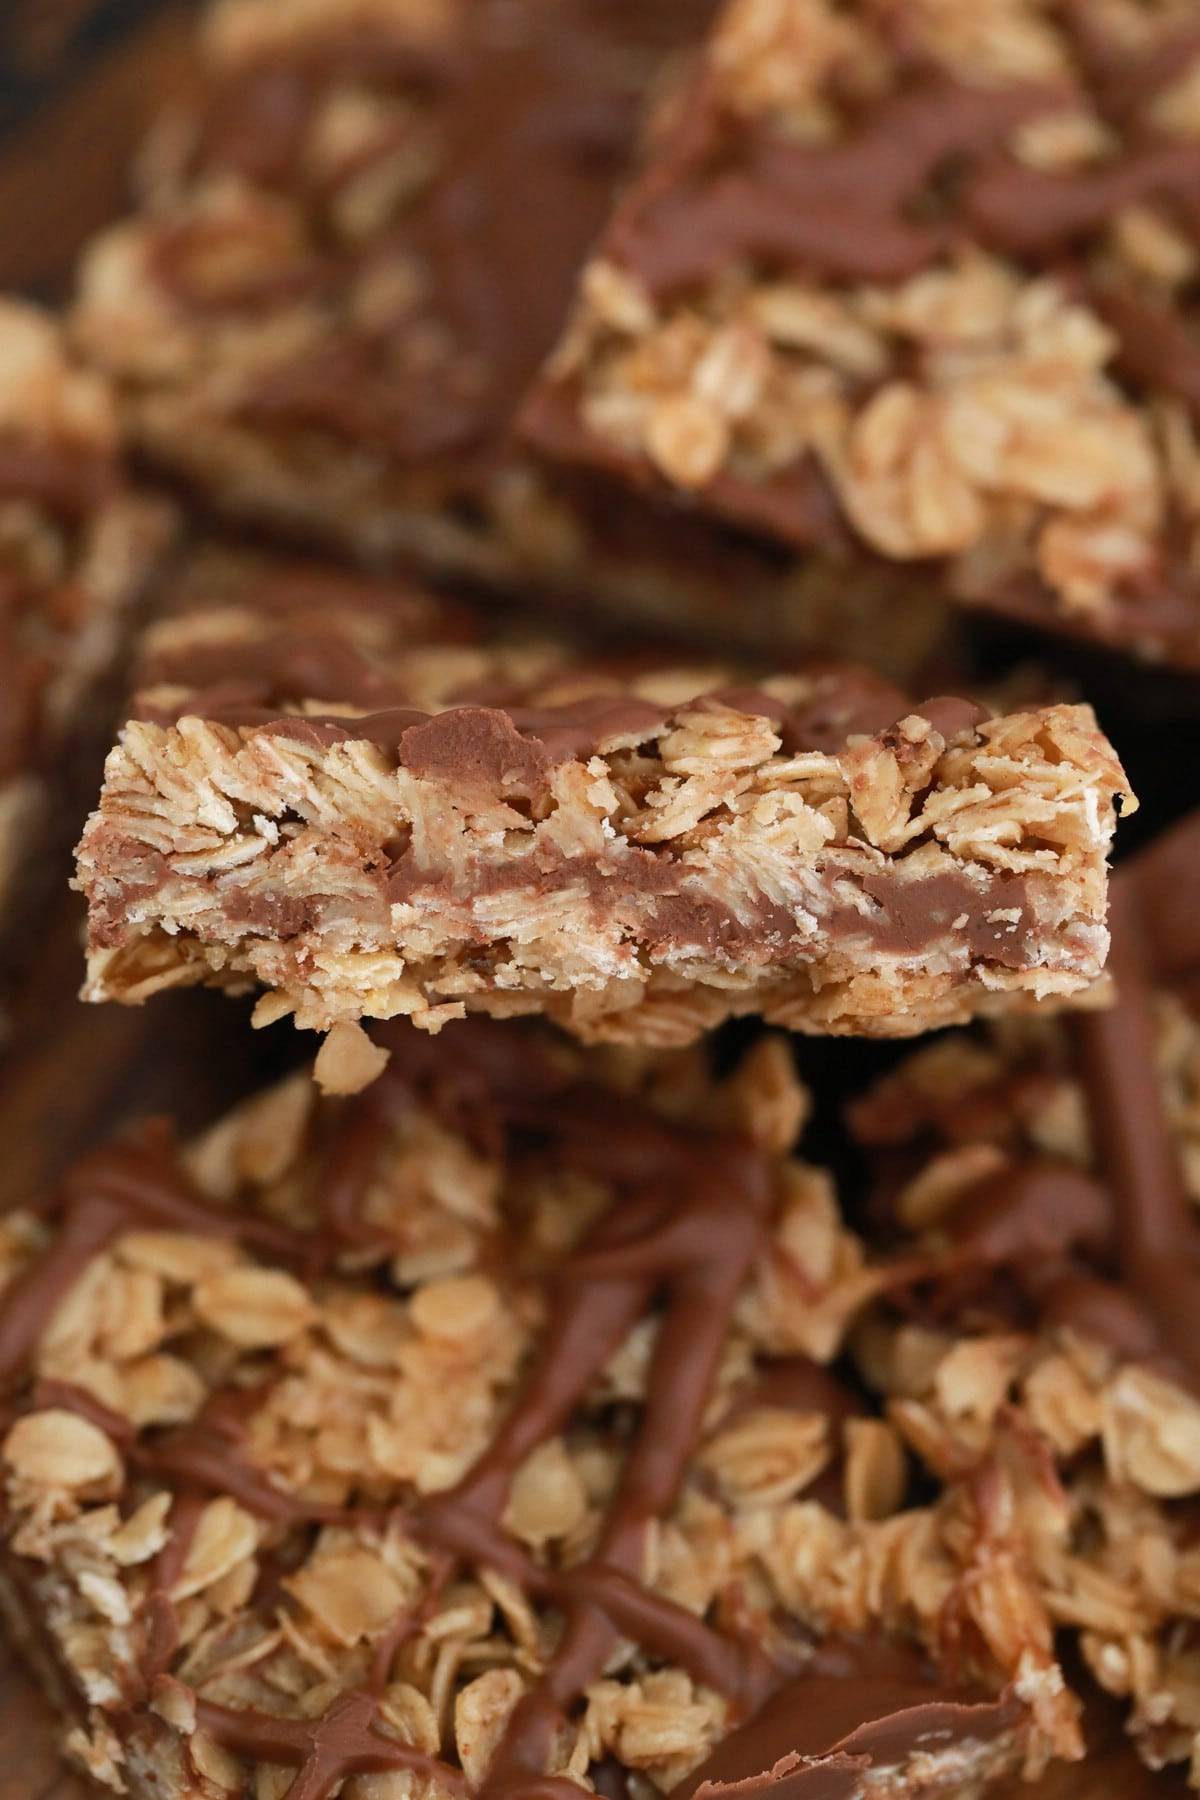 A stack of chocolate oatmeal bars